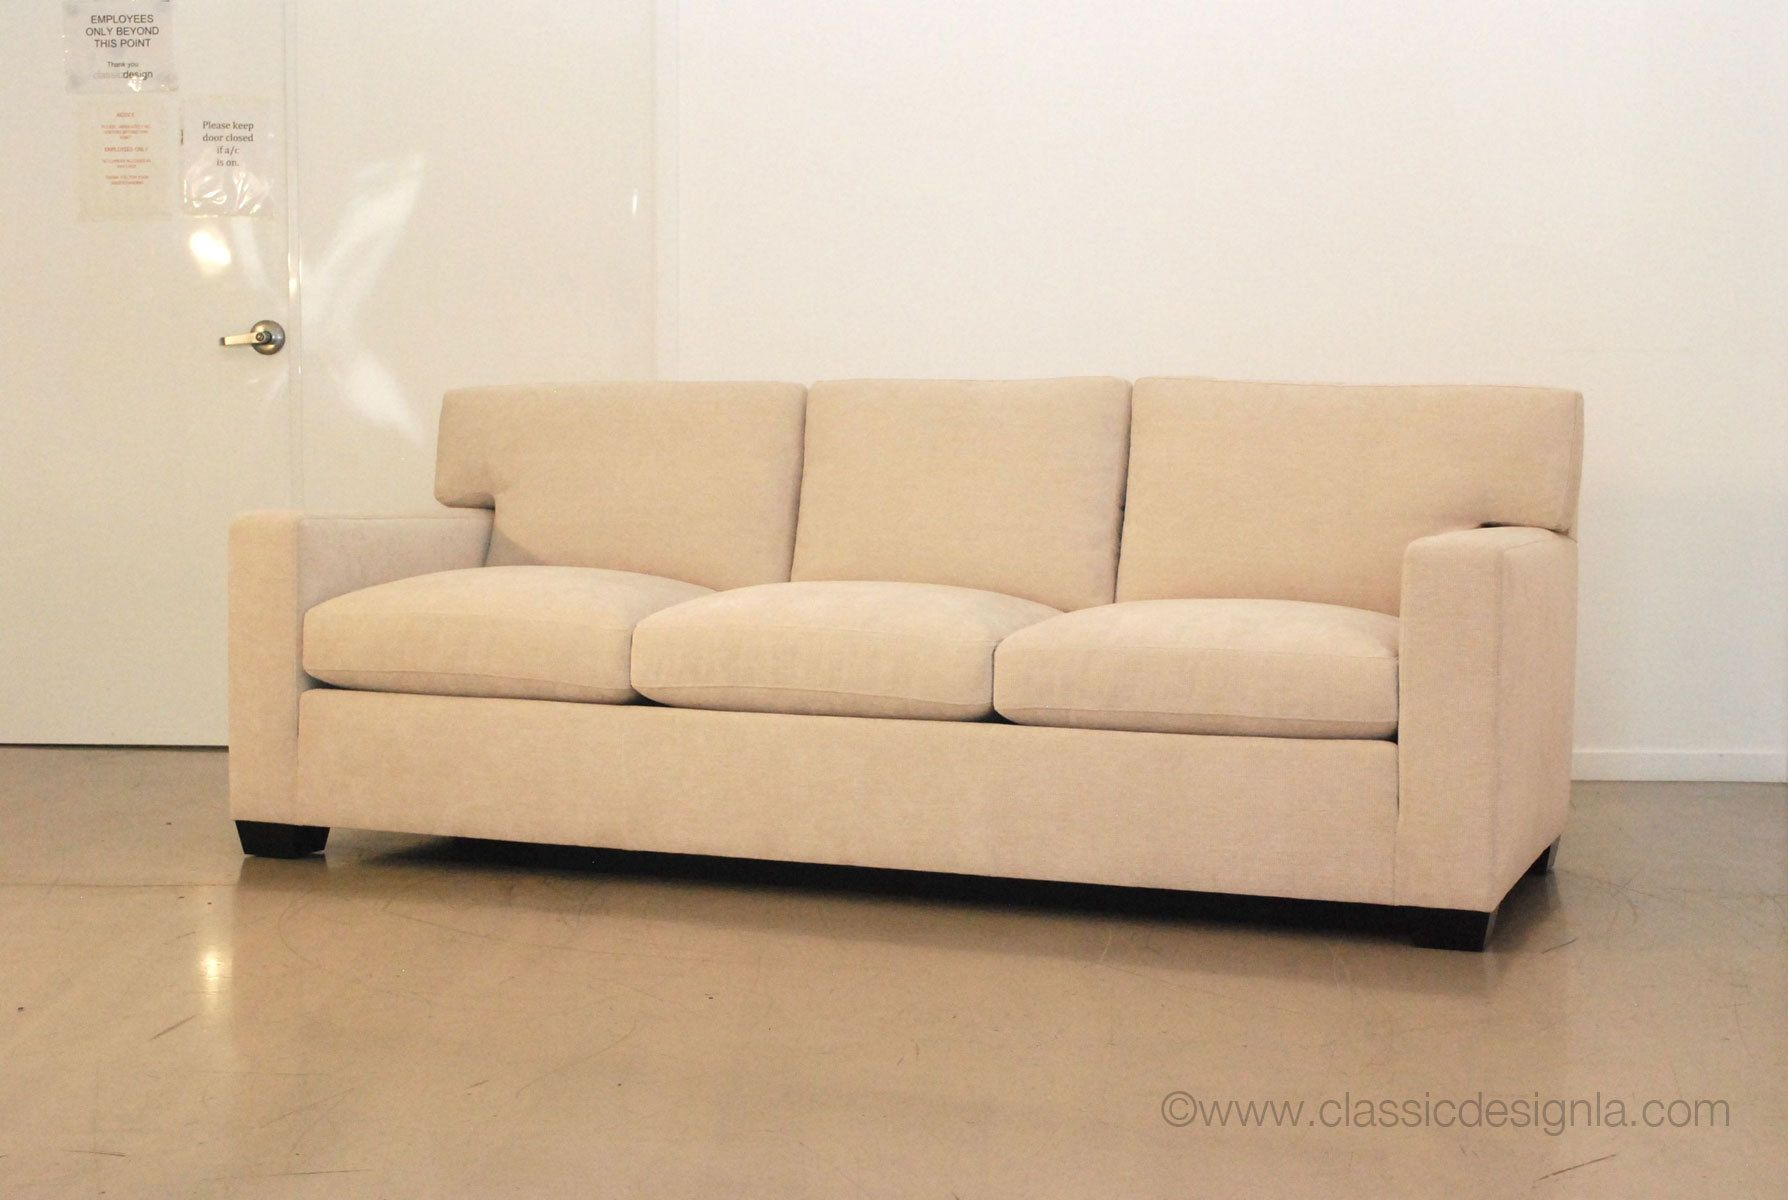 Custom Jean-Michel Frank sofa